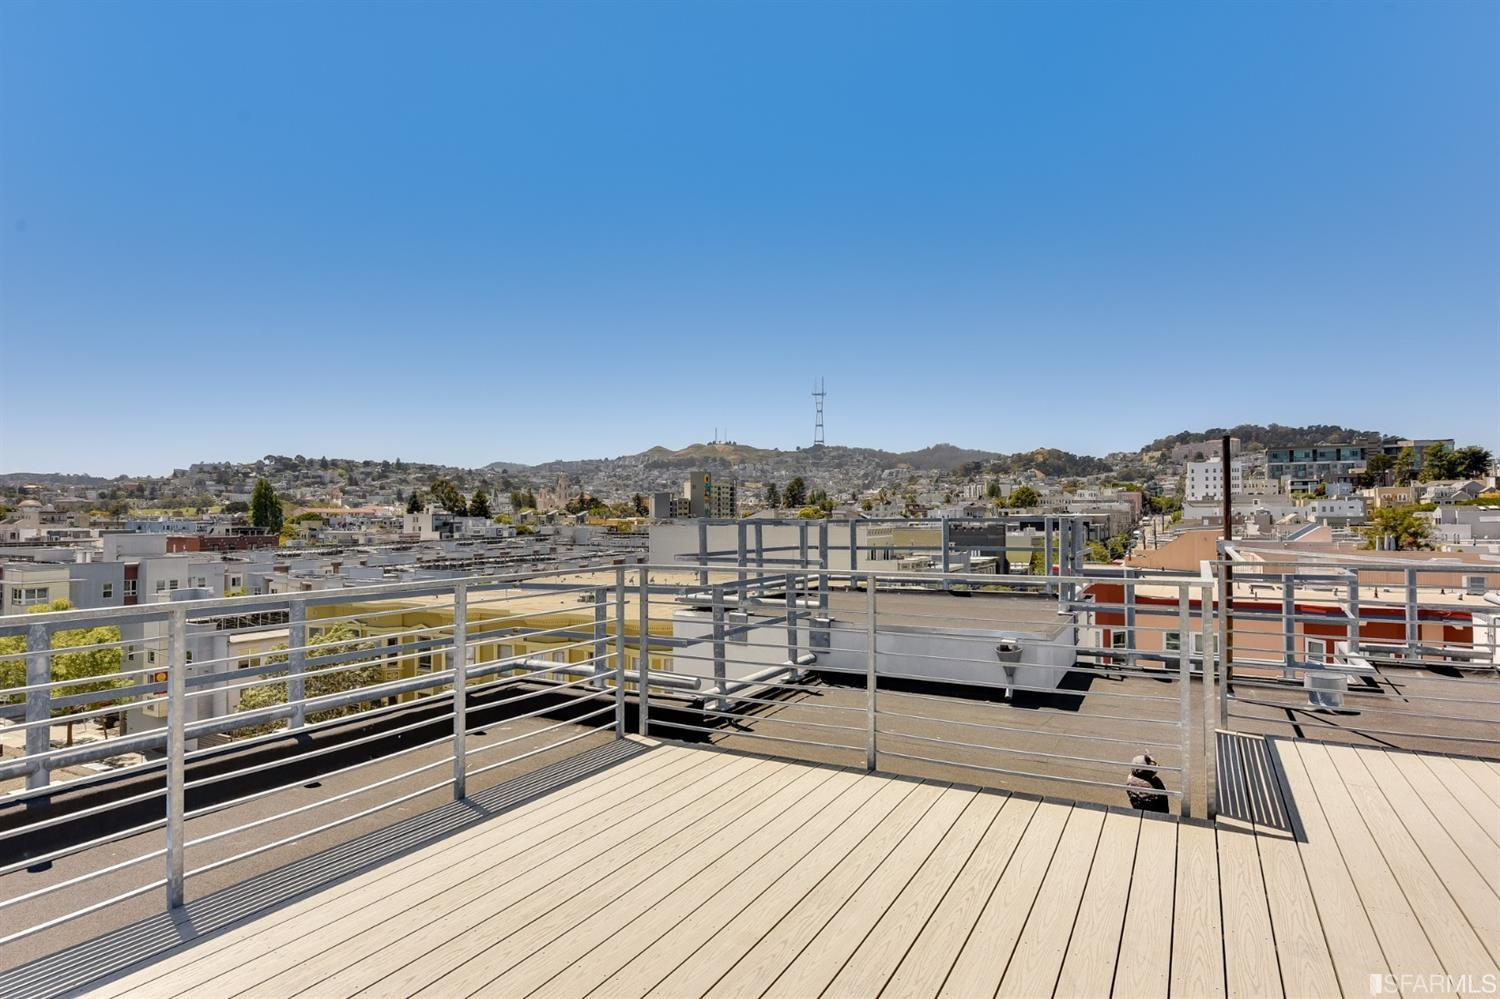 Photo #12: Roof deck looking west